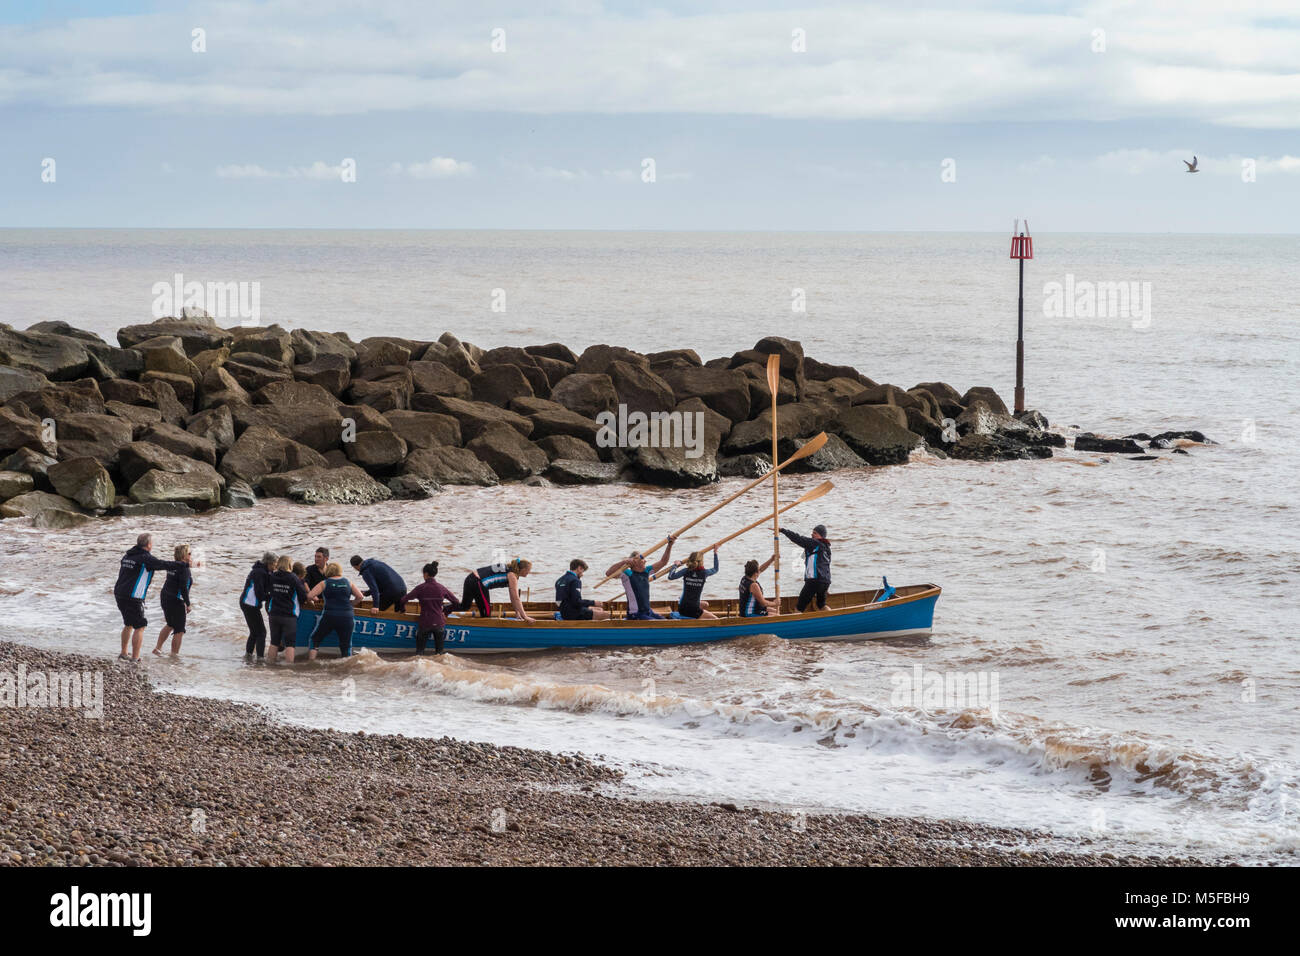 Launching a new Pilot Gig boat the 'Little Picket' at Sidmouth, Devon - Stock Image